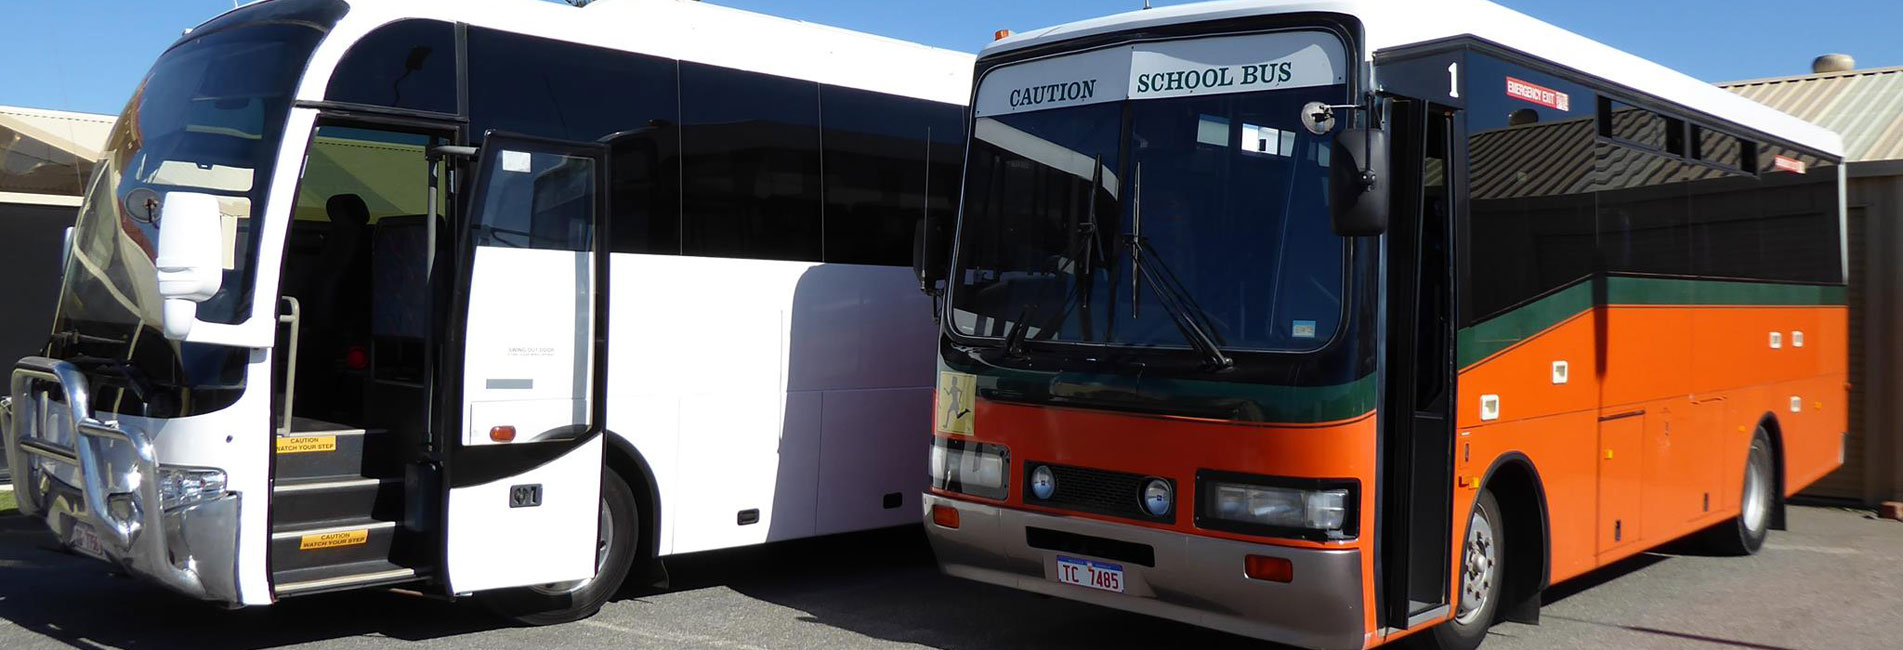 Bus Charters Golden Bay, Charter Tours Mandurah, Excursions Kwinana, Private Bus Service Baldivis, Shuttle Service Rockingham, Winery Tours Wooroloo